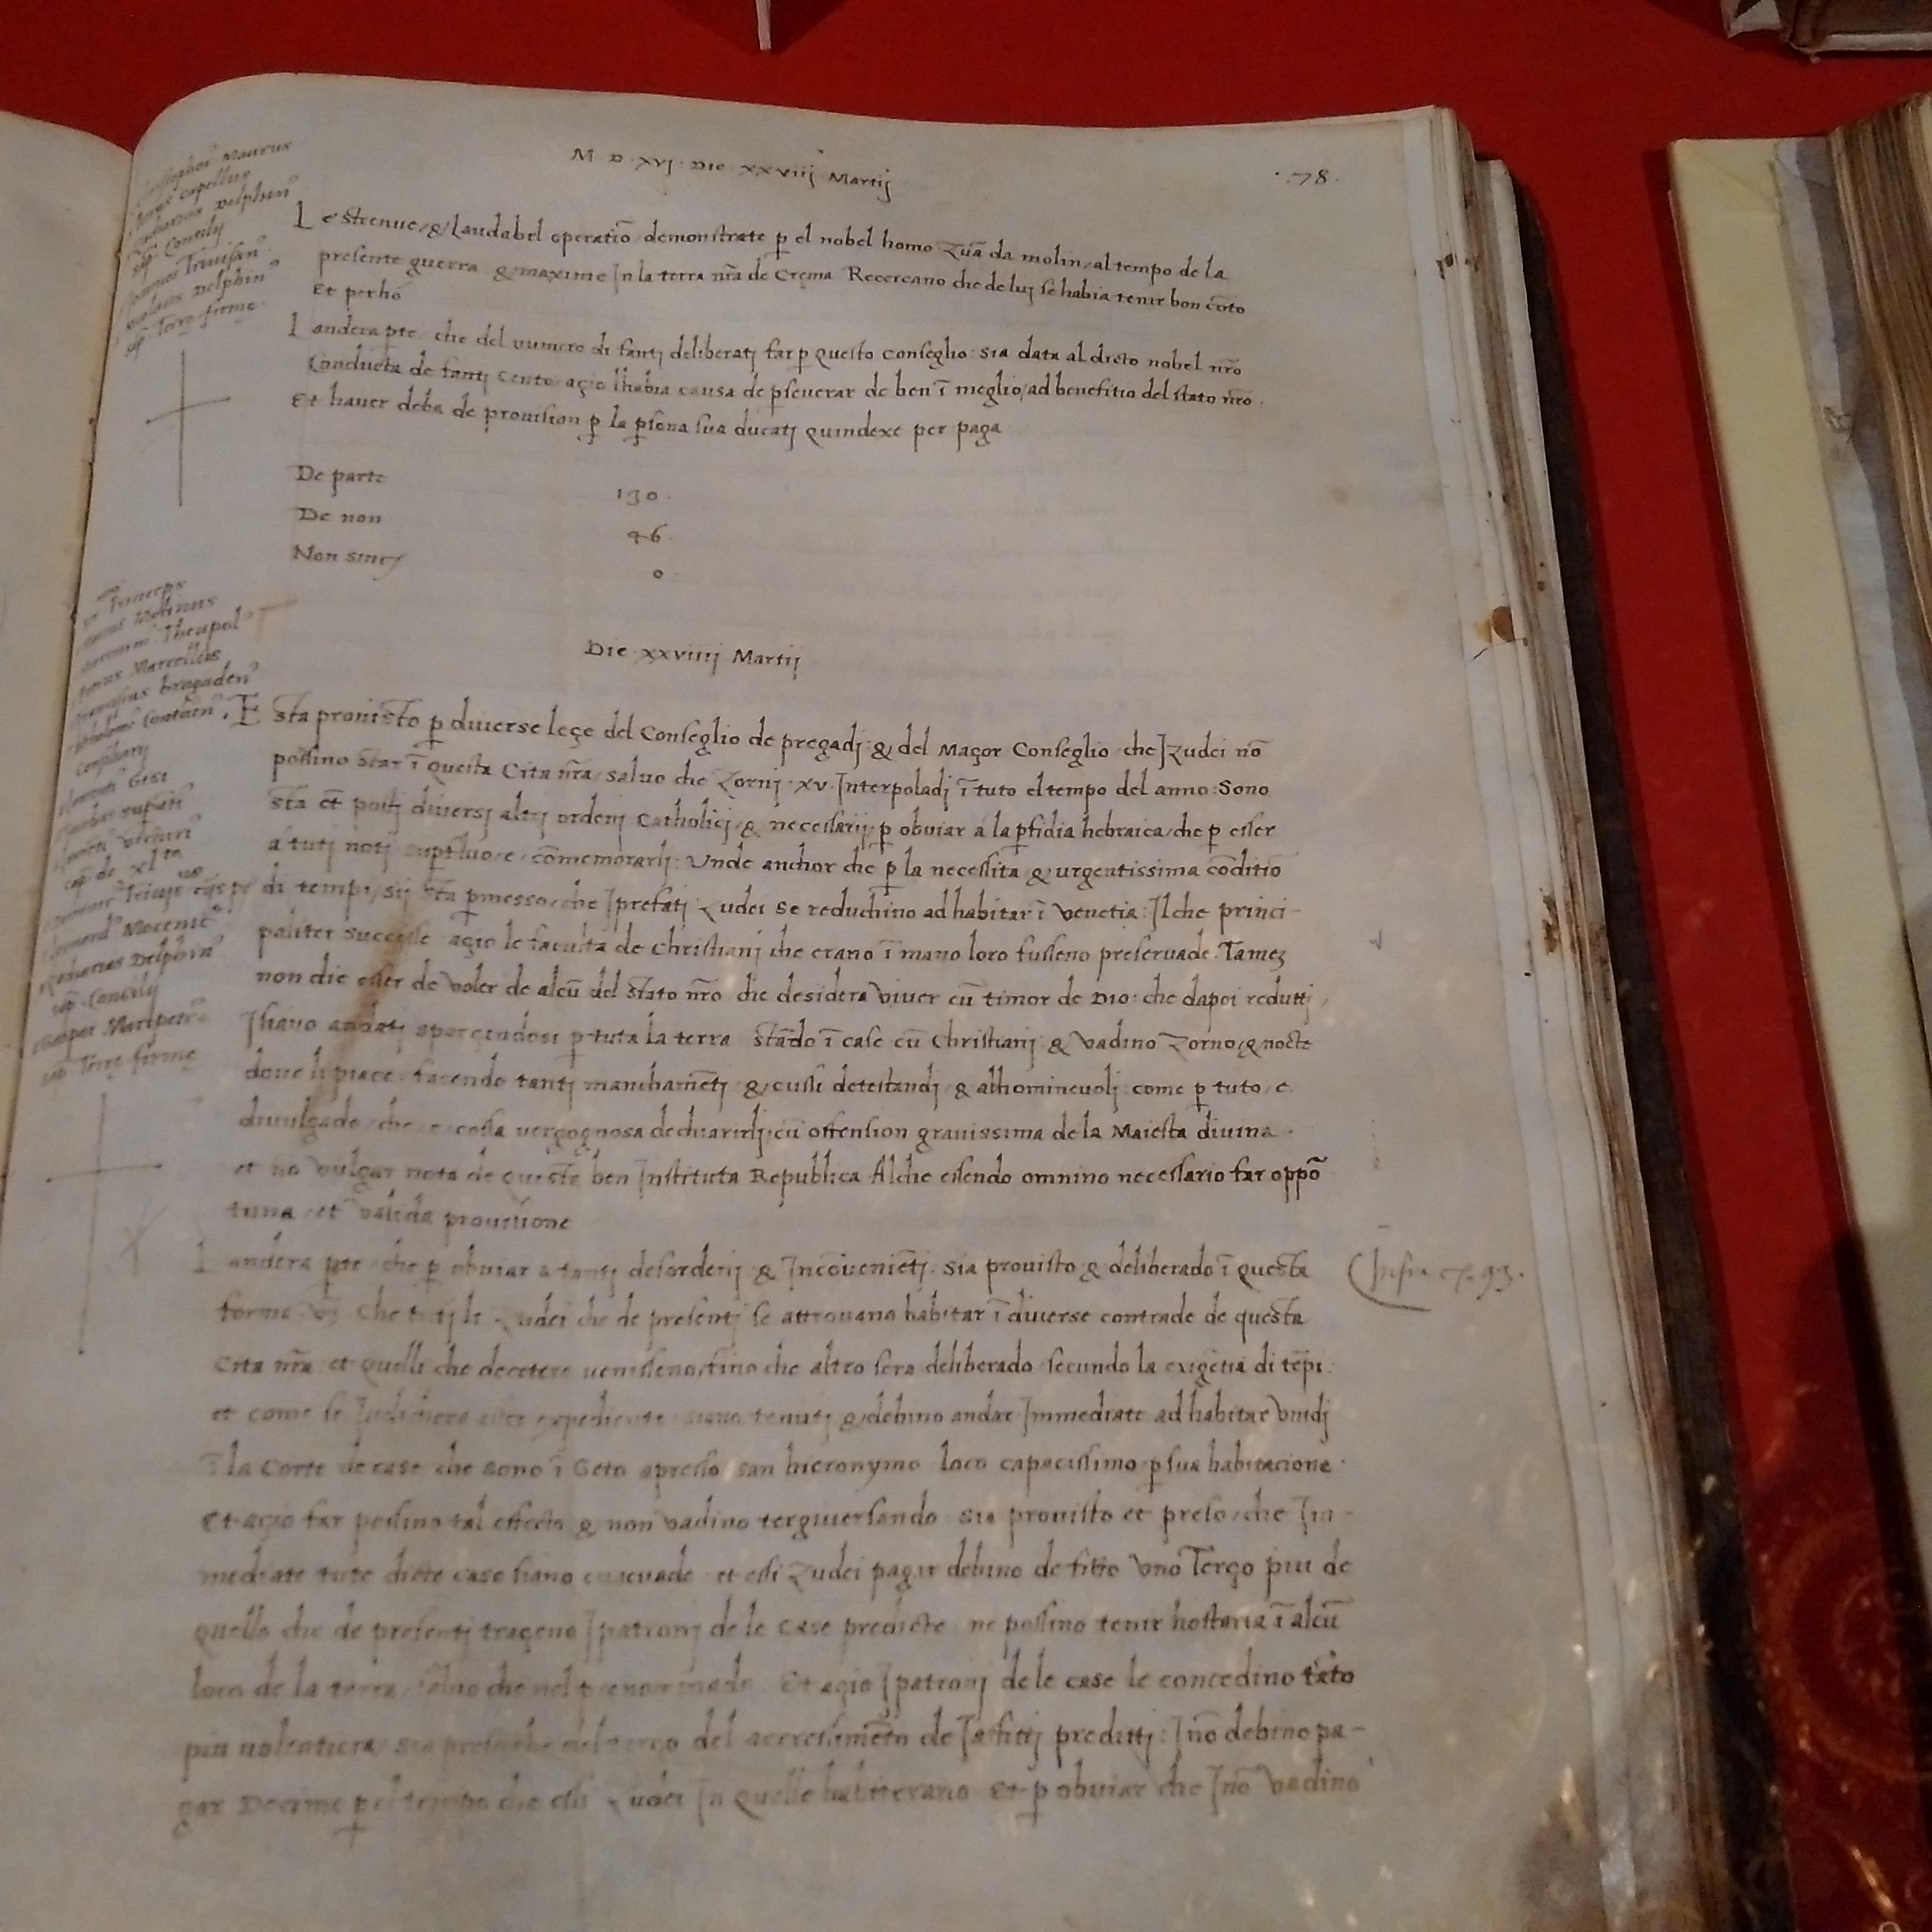 The Senate's journal reporting the decision of creating a separate quarter for Venetian Jews. The date is March 29th 1516